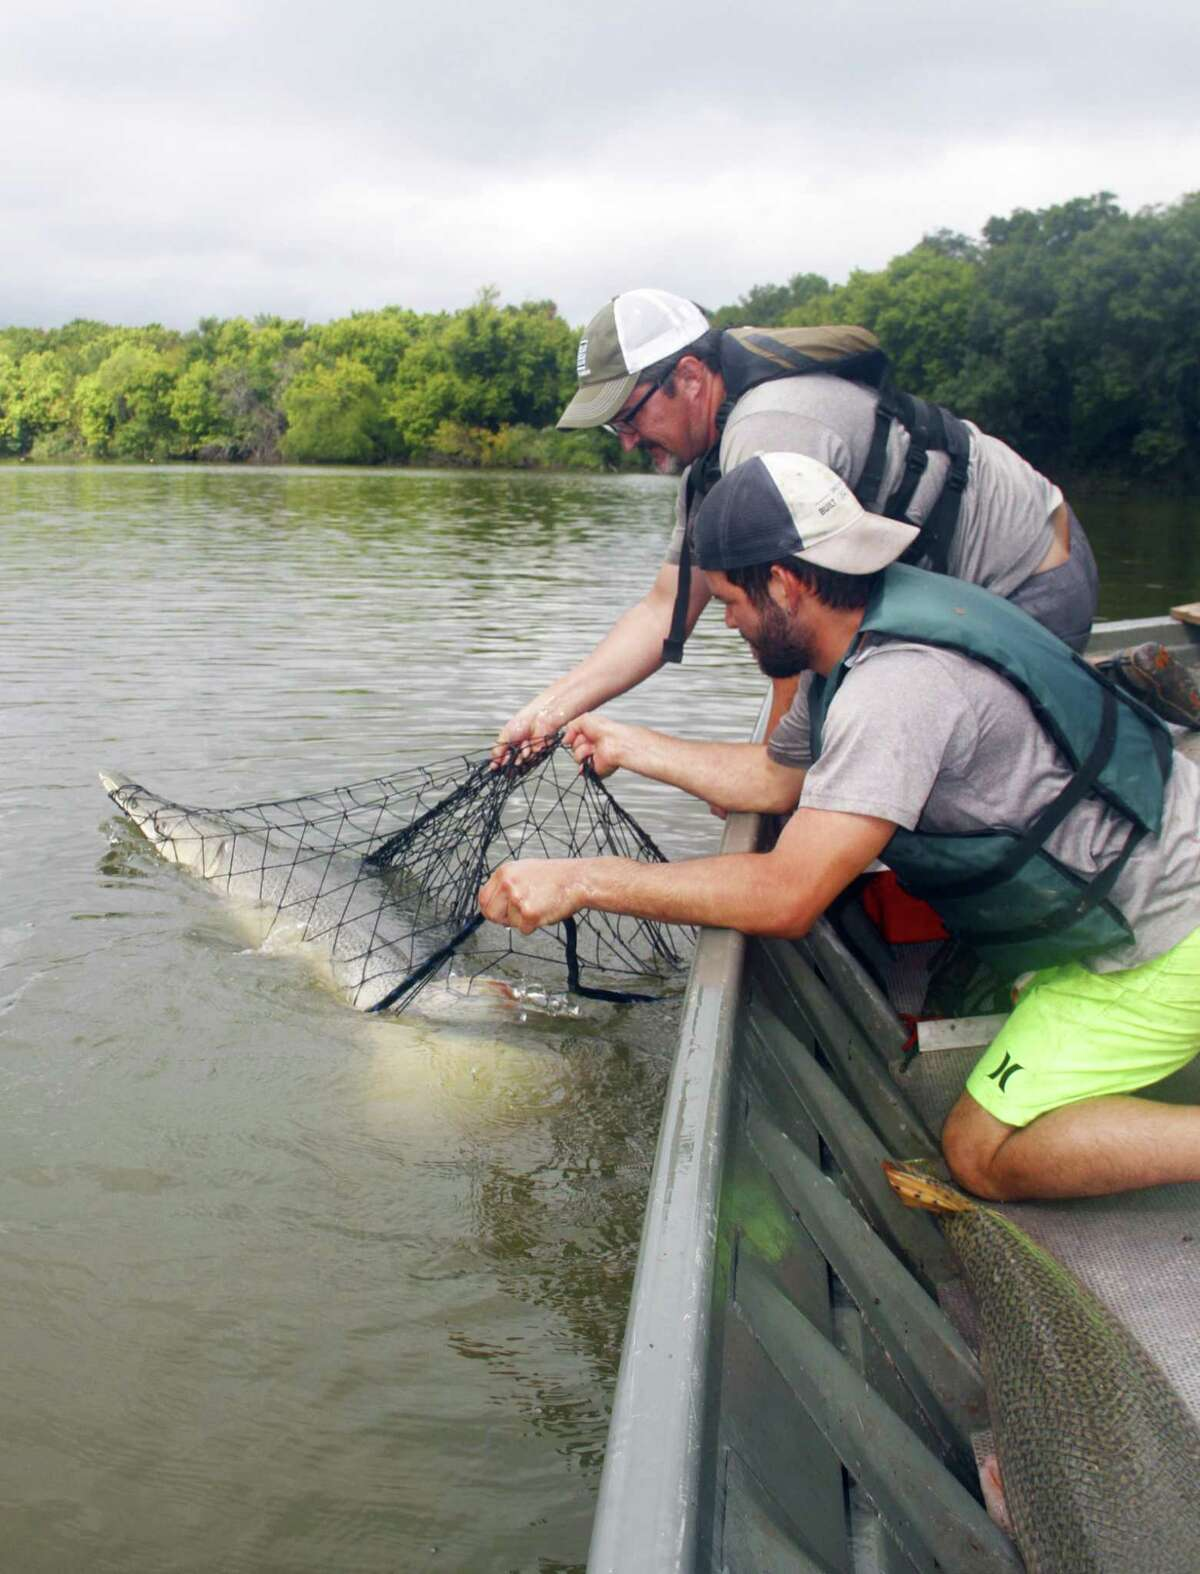 Texas fisheries scientists Dan Daugherty and Dominik Chilleri work to transfer live alligator gar caught in gill nets set in the Brazos River into their boat. The long-lived gar, some weighing more than 100 pounds, will be tagged and released as part of ongoing research into the state's largest freshwater fish.